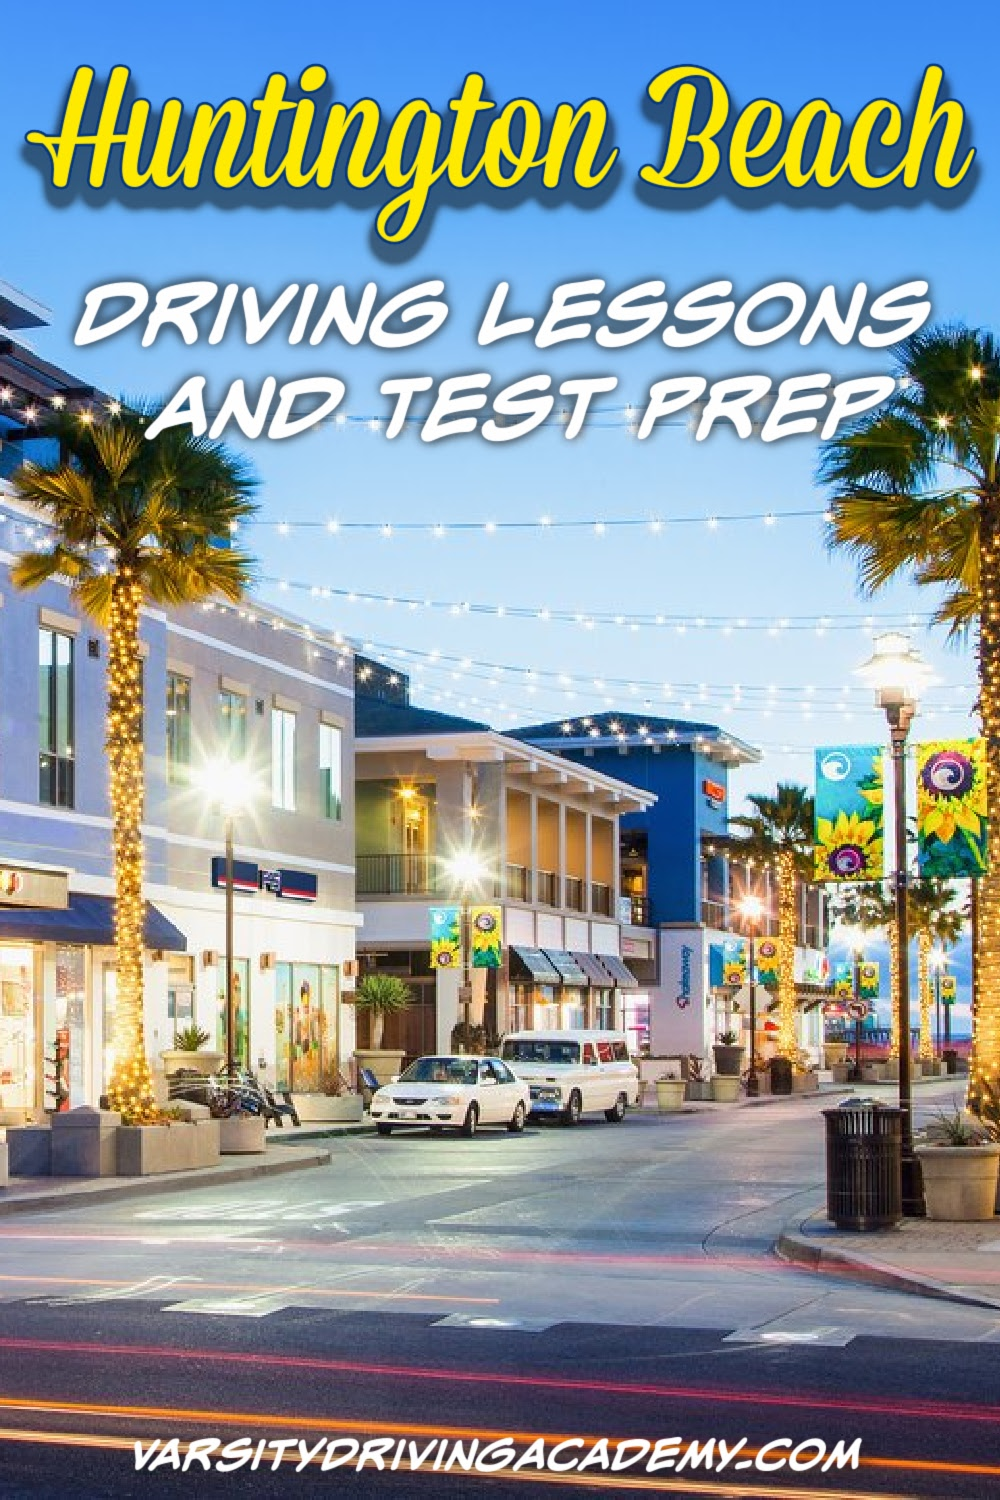 There are many ways Varsity Driving Academy can help you with your Huntington Beach driving lessons and to become a safe driver.